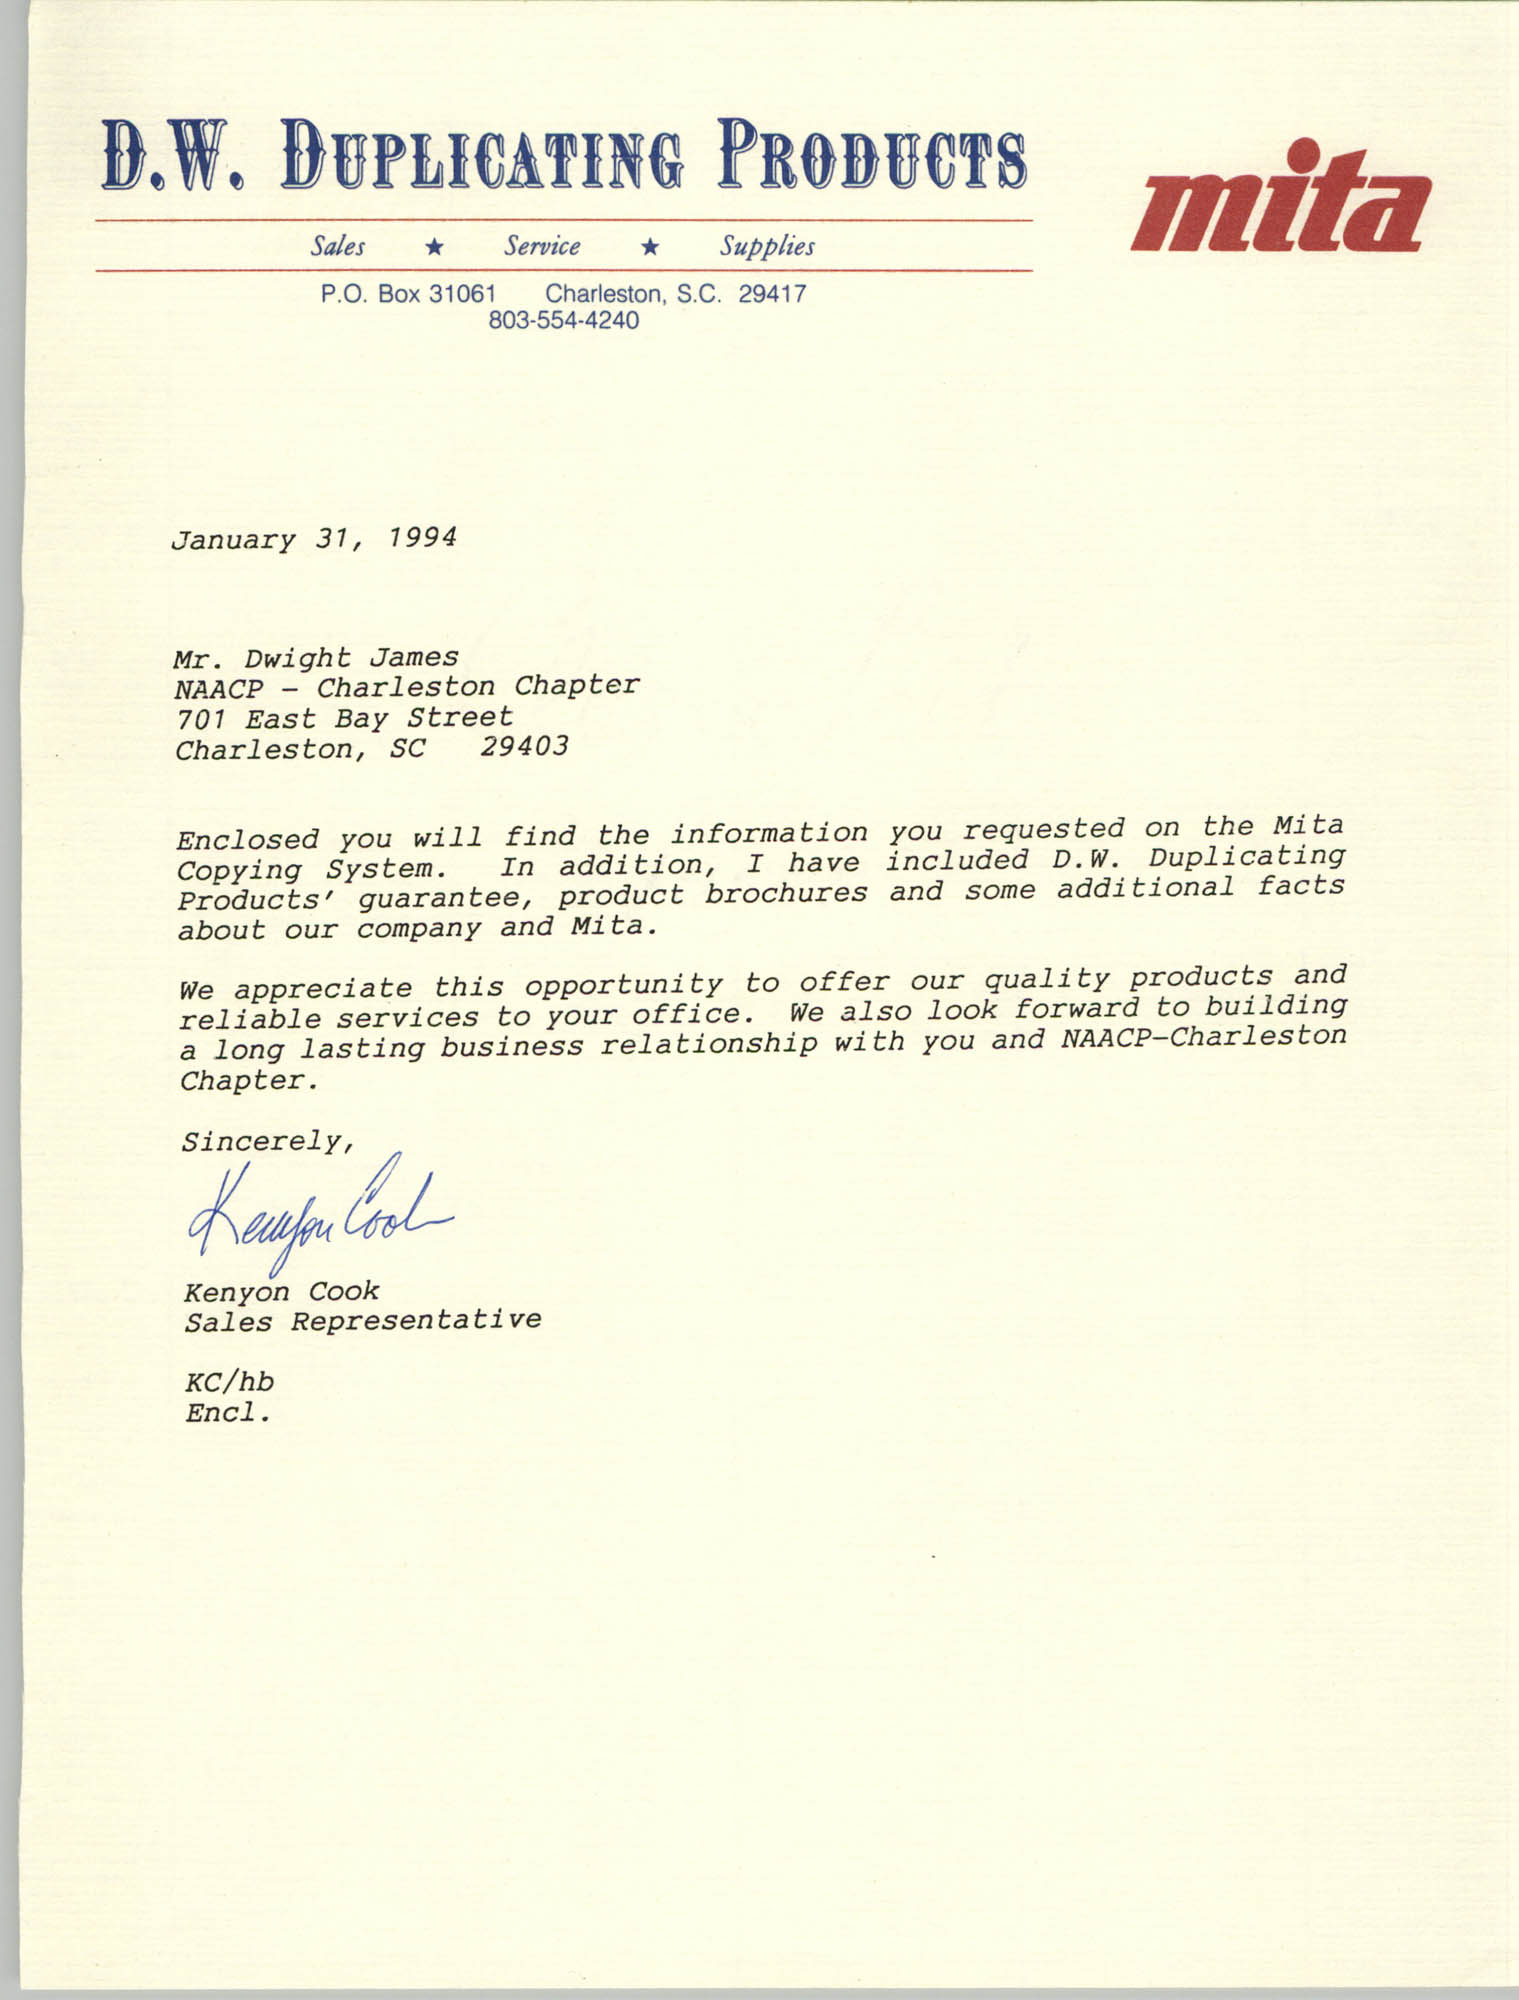 Letter from Kenyon Cook to Dwight James, February 7, 1994